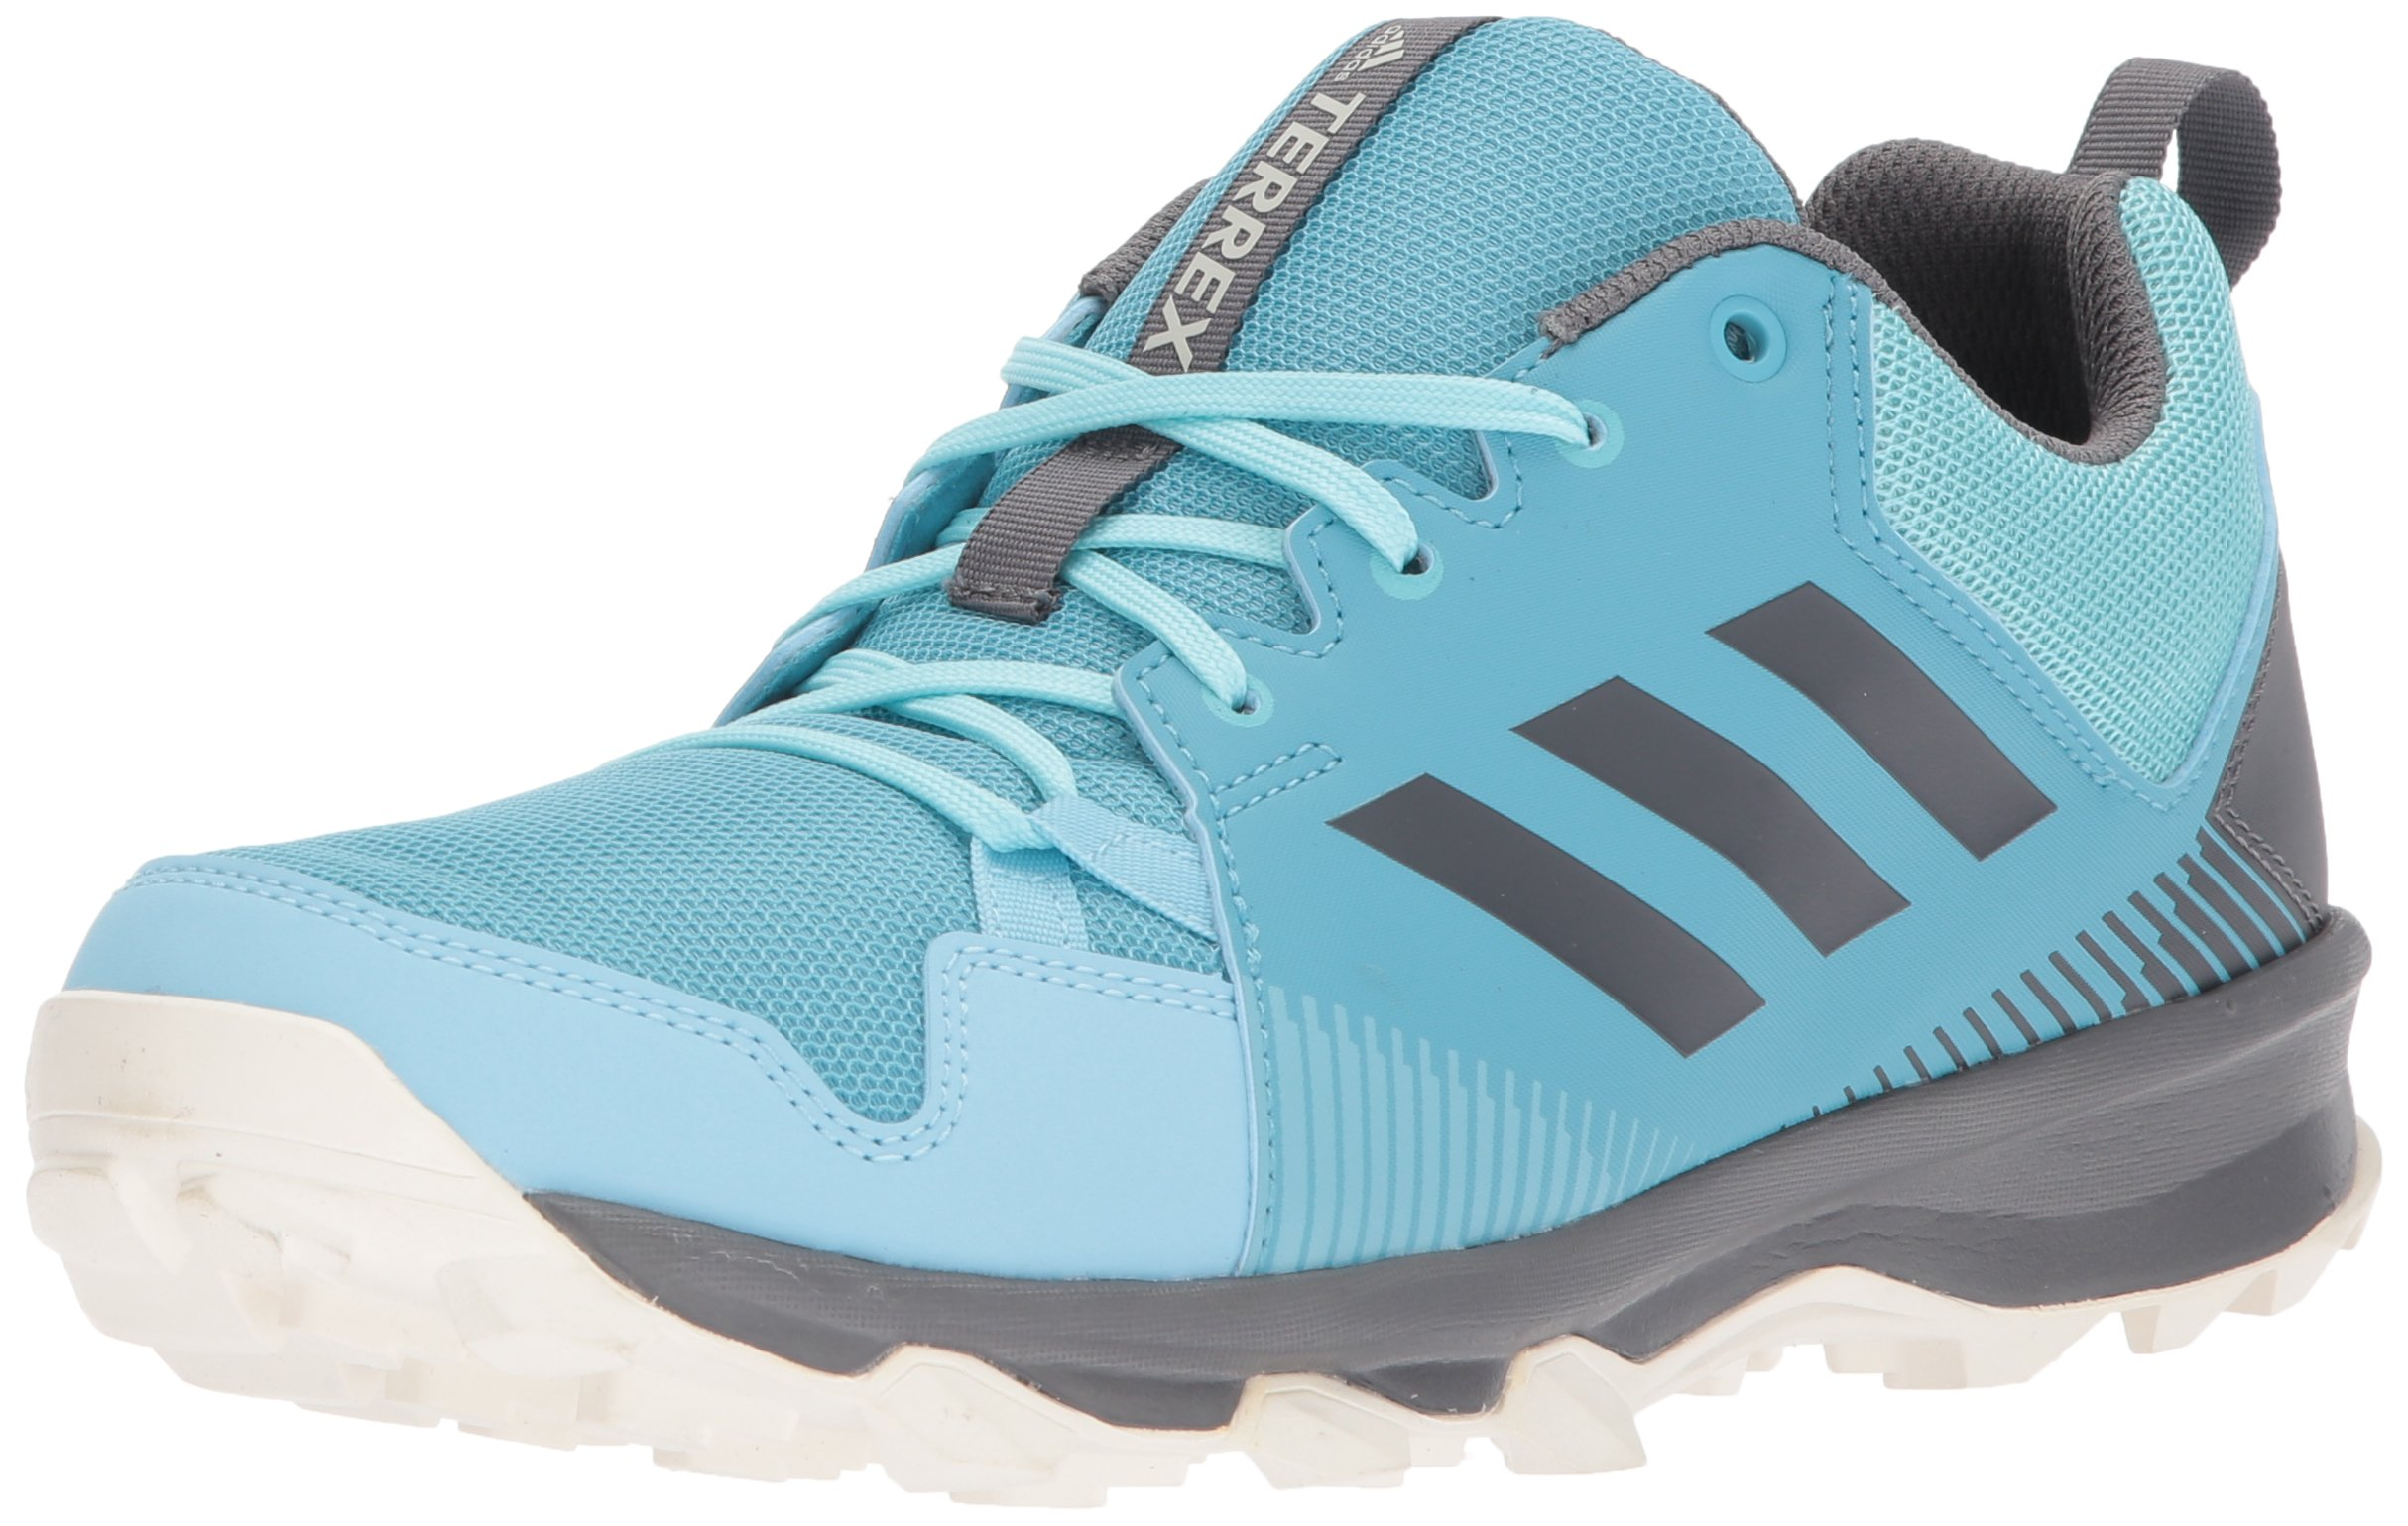 adidas outdoor Women's Terrex Tracerocker W Trail Running Shoe Vapour Grey Four/Icey Blue, 5 M US